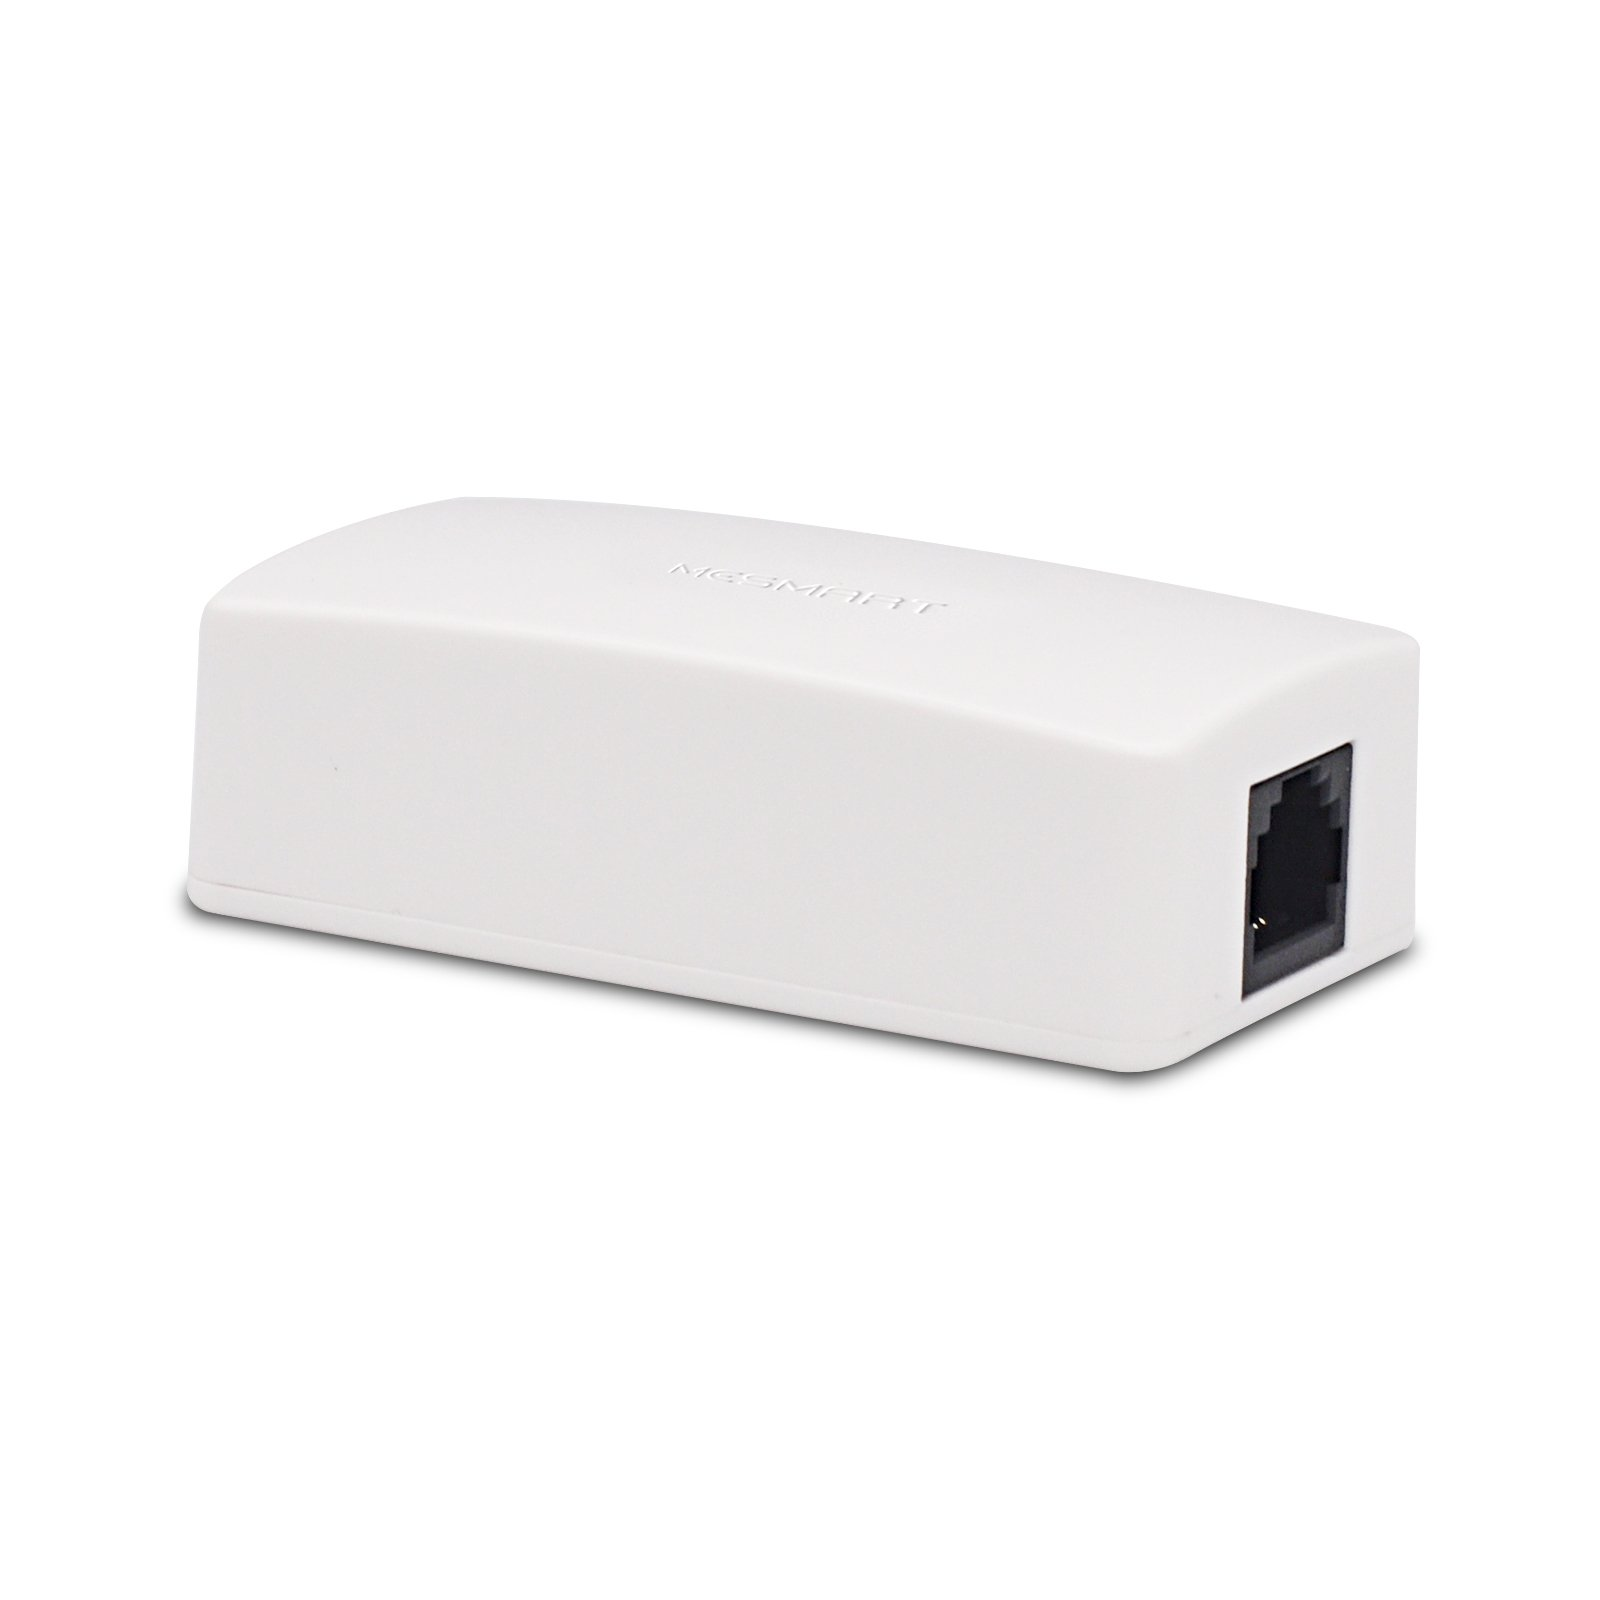 MESMART Smart Module for Electric Curtain Motor (WiFi) RJ12 Connector Port Wireless App Control Compatible with iOS Android